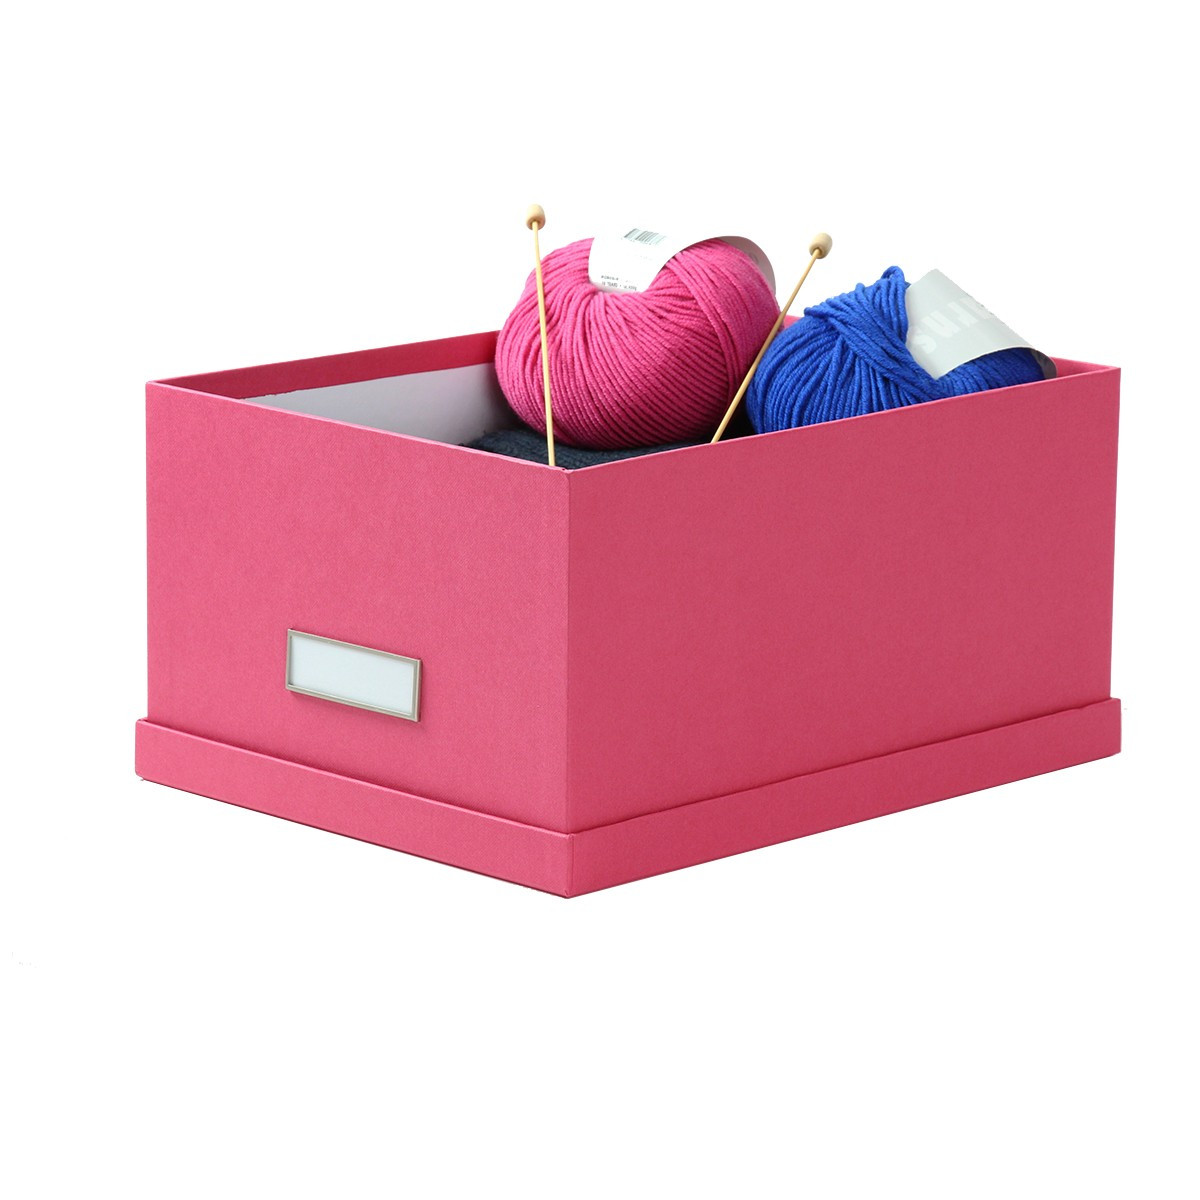 bo te rangement dvd en carton fuchsia. Black Bedroom Furniture Sets. Home Design Ideas